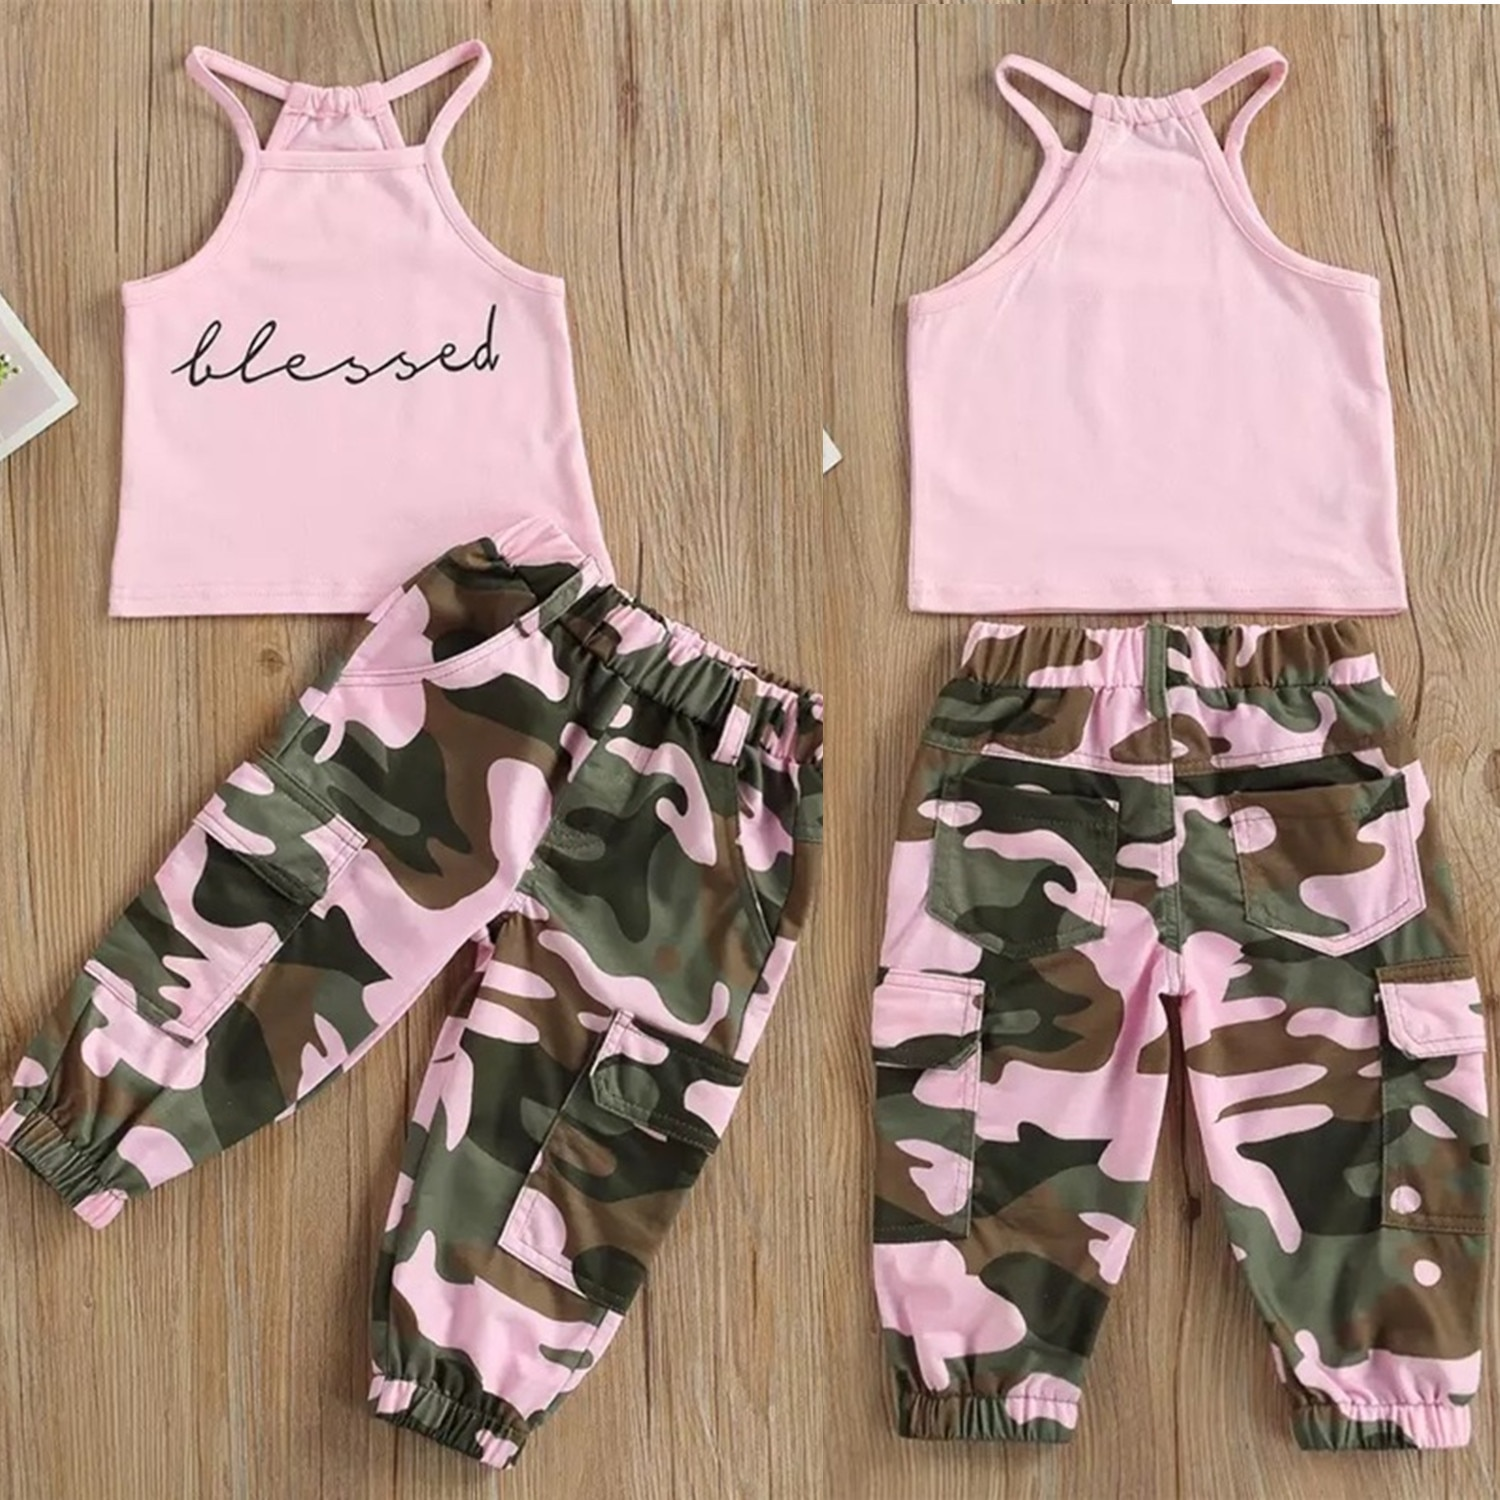 Summer Children Suits for Girls Sets for Baby 2pcs Clothes T-shirt + Pants Sets Toddler Girl Clothing Sets 1-5 Years Sport Suits